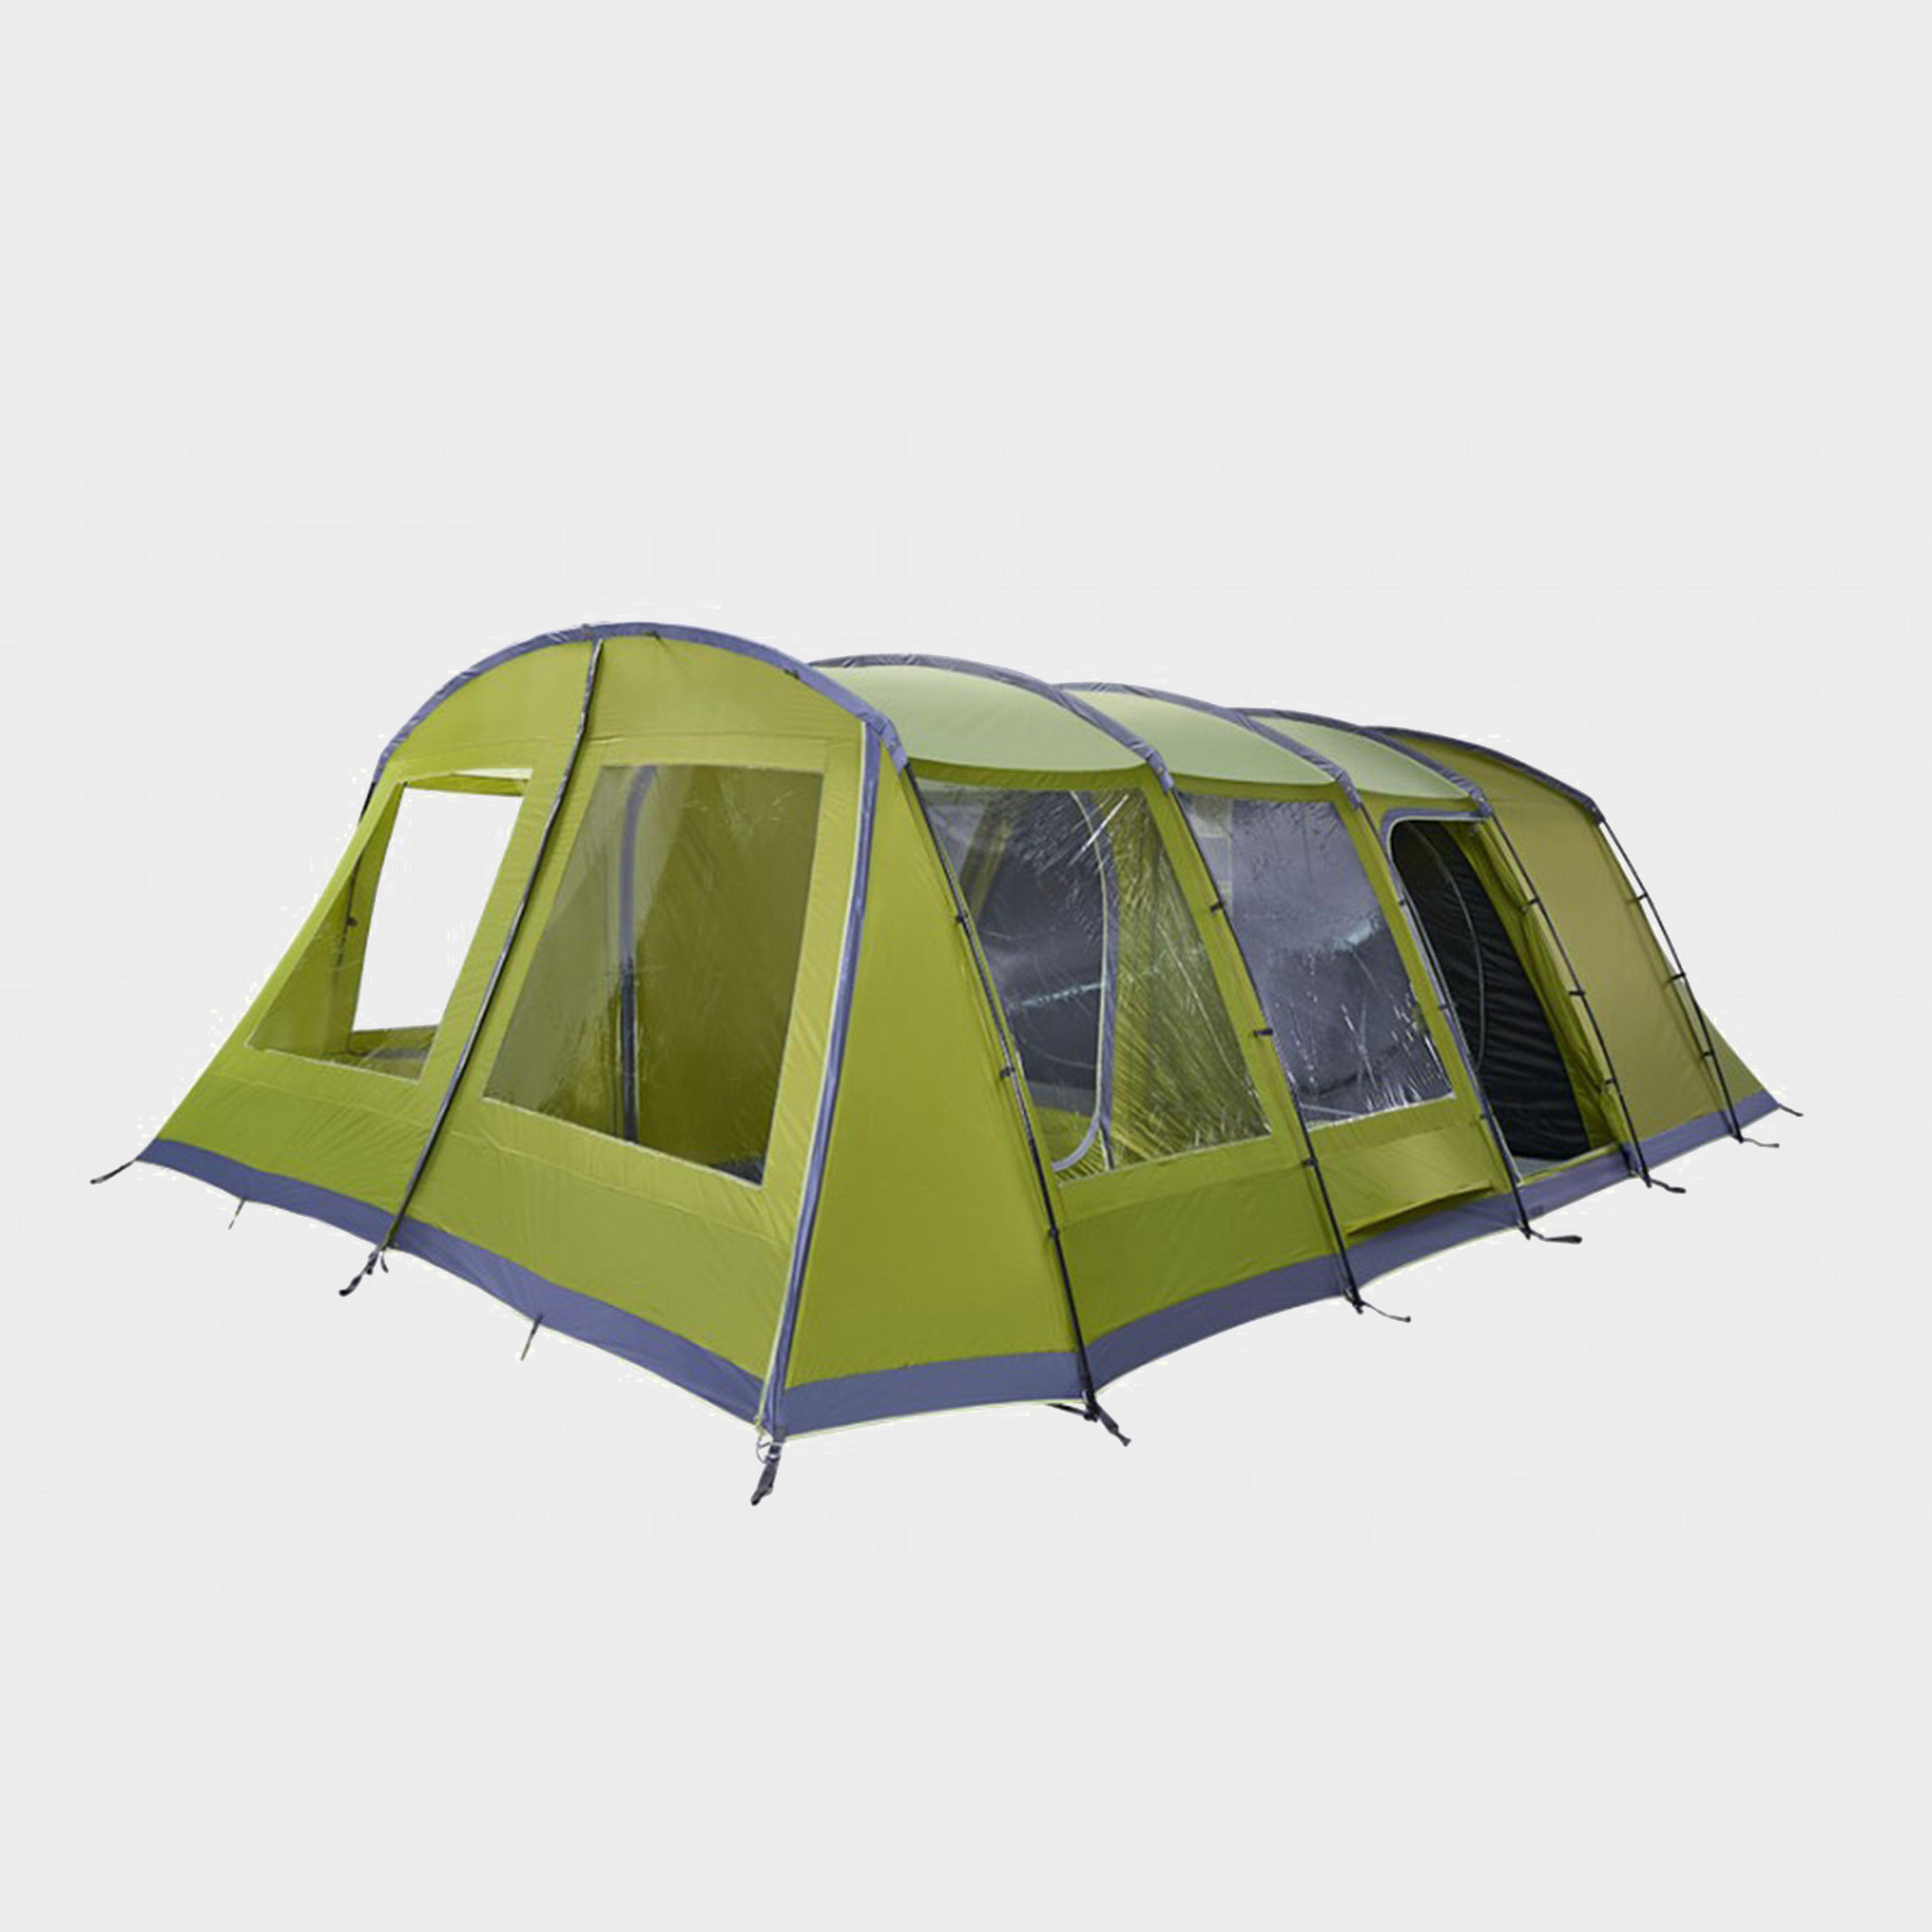 Vango Casa Lux 7 Person Family Tent - Green/Grn, Green/GRN